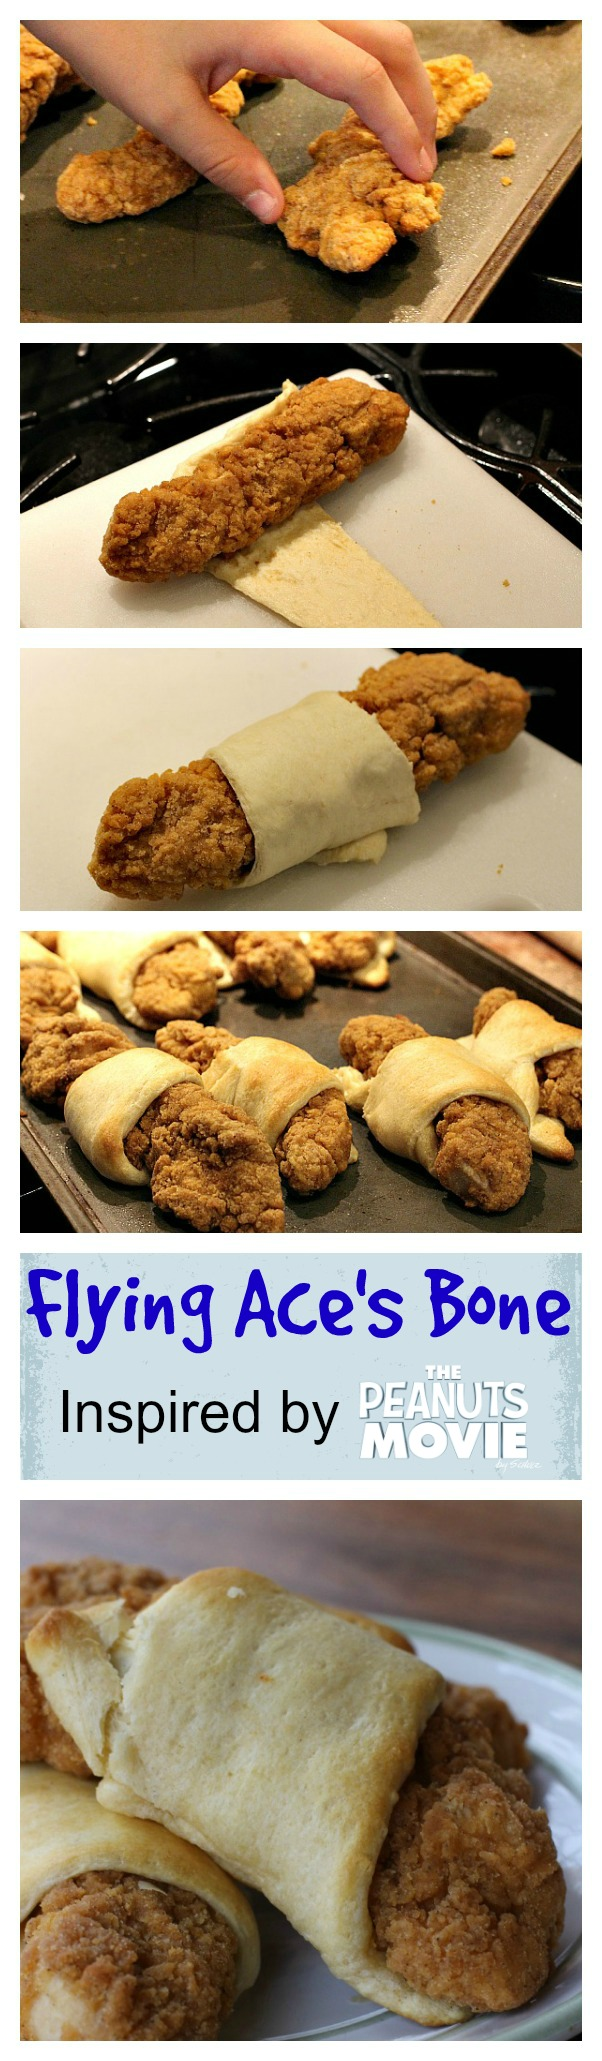 Flying Ace's Bone Collage